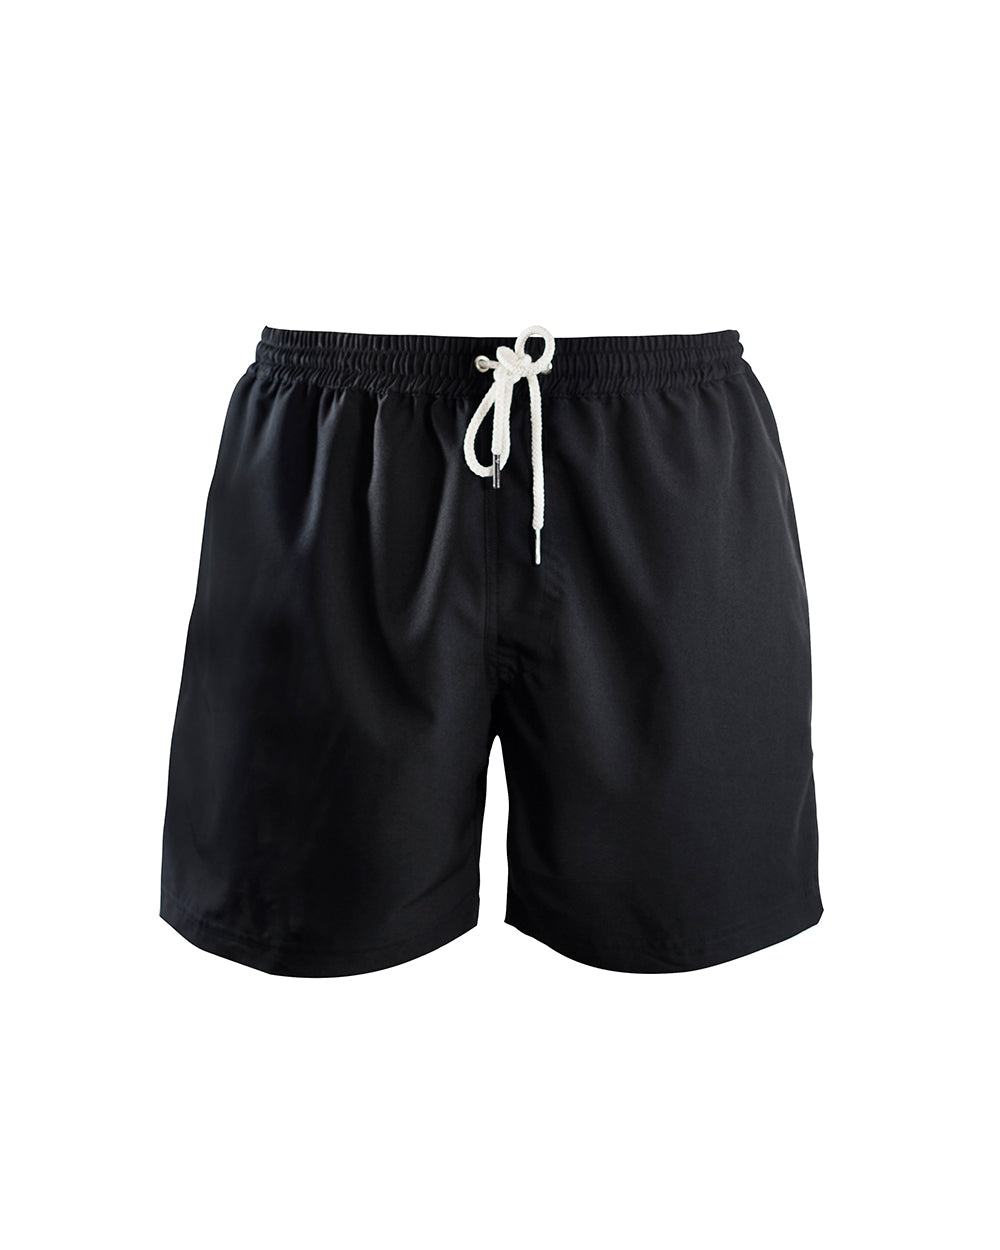 Short All Black -UNØ The Shop